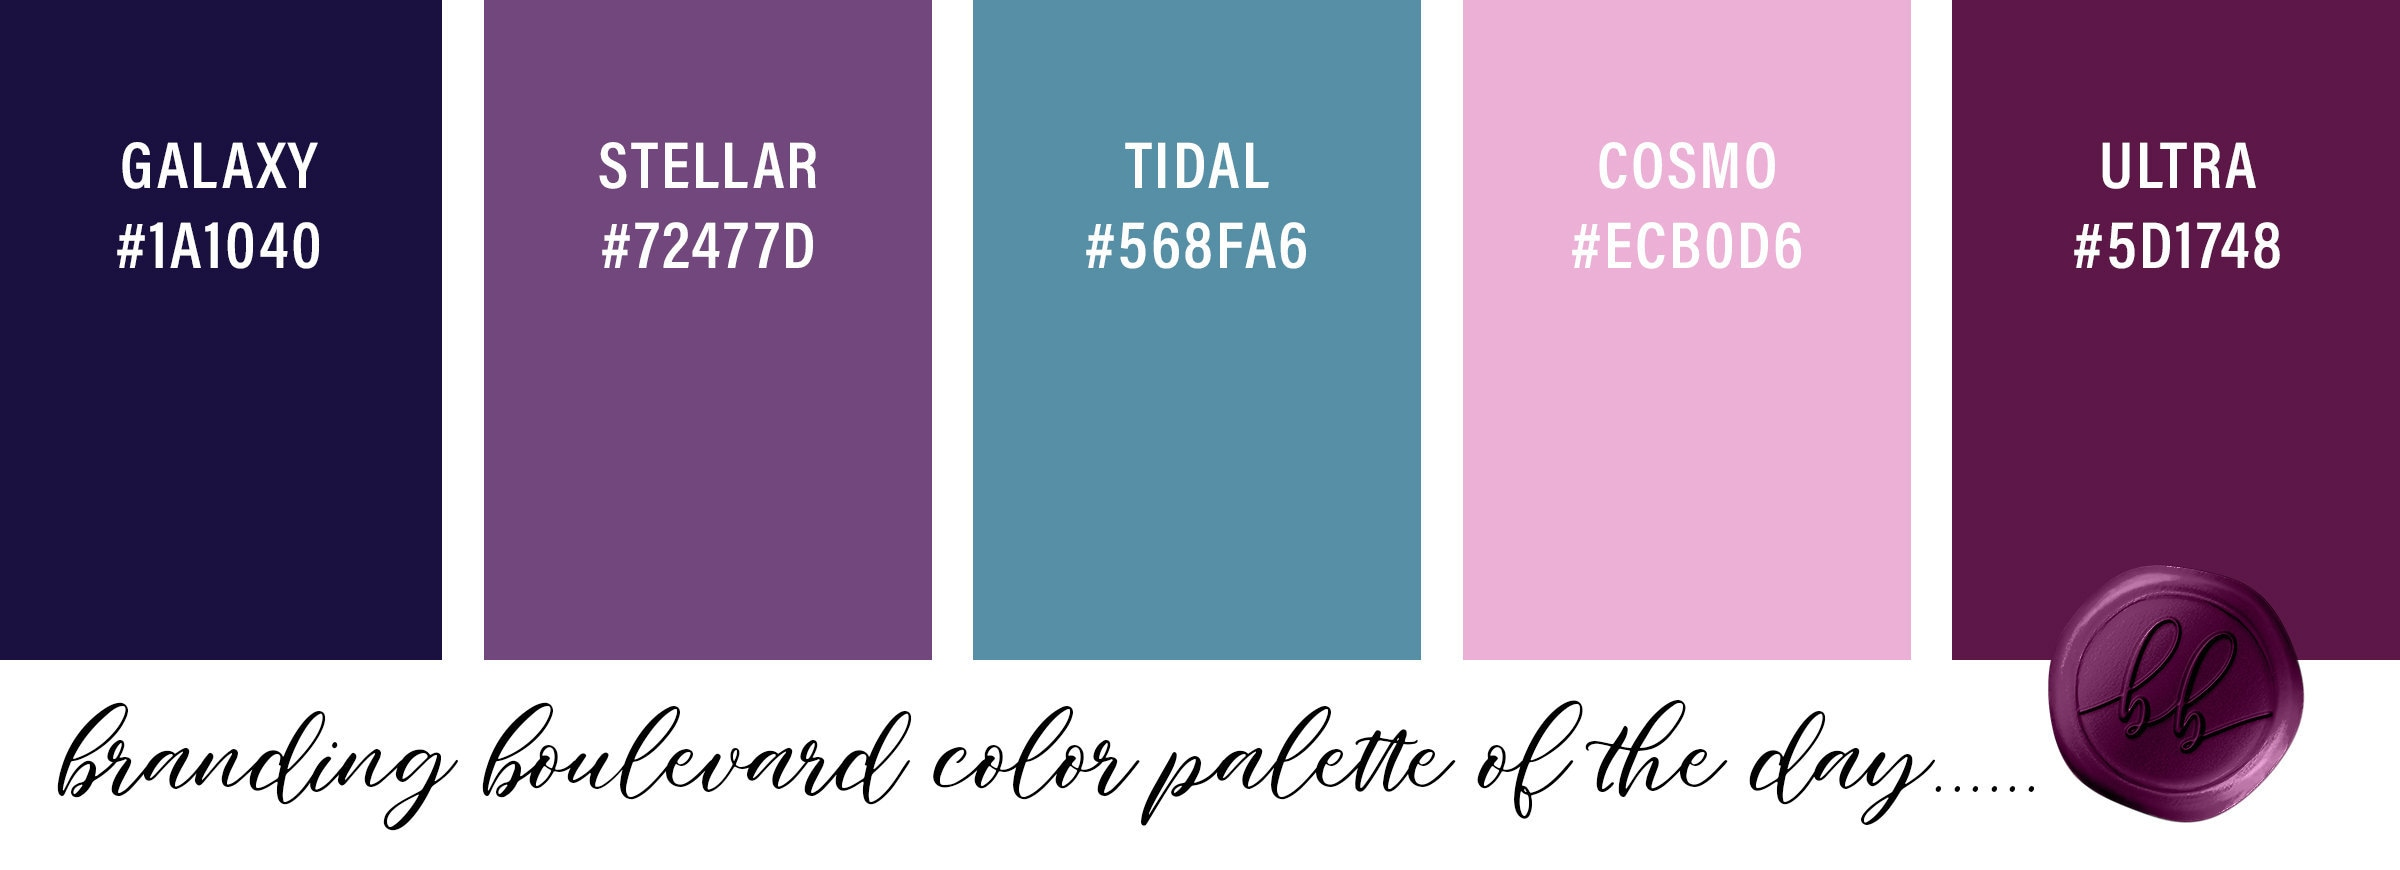 Galaxy Inspired Color Palette - Galaxy Blue, Stellar Purple, Tidal Blue, Cosmo Pink, and Ultra Violet